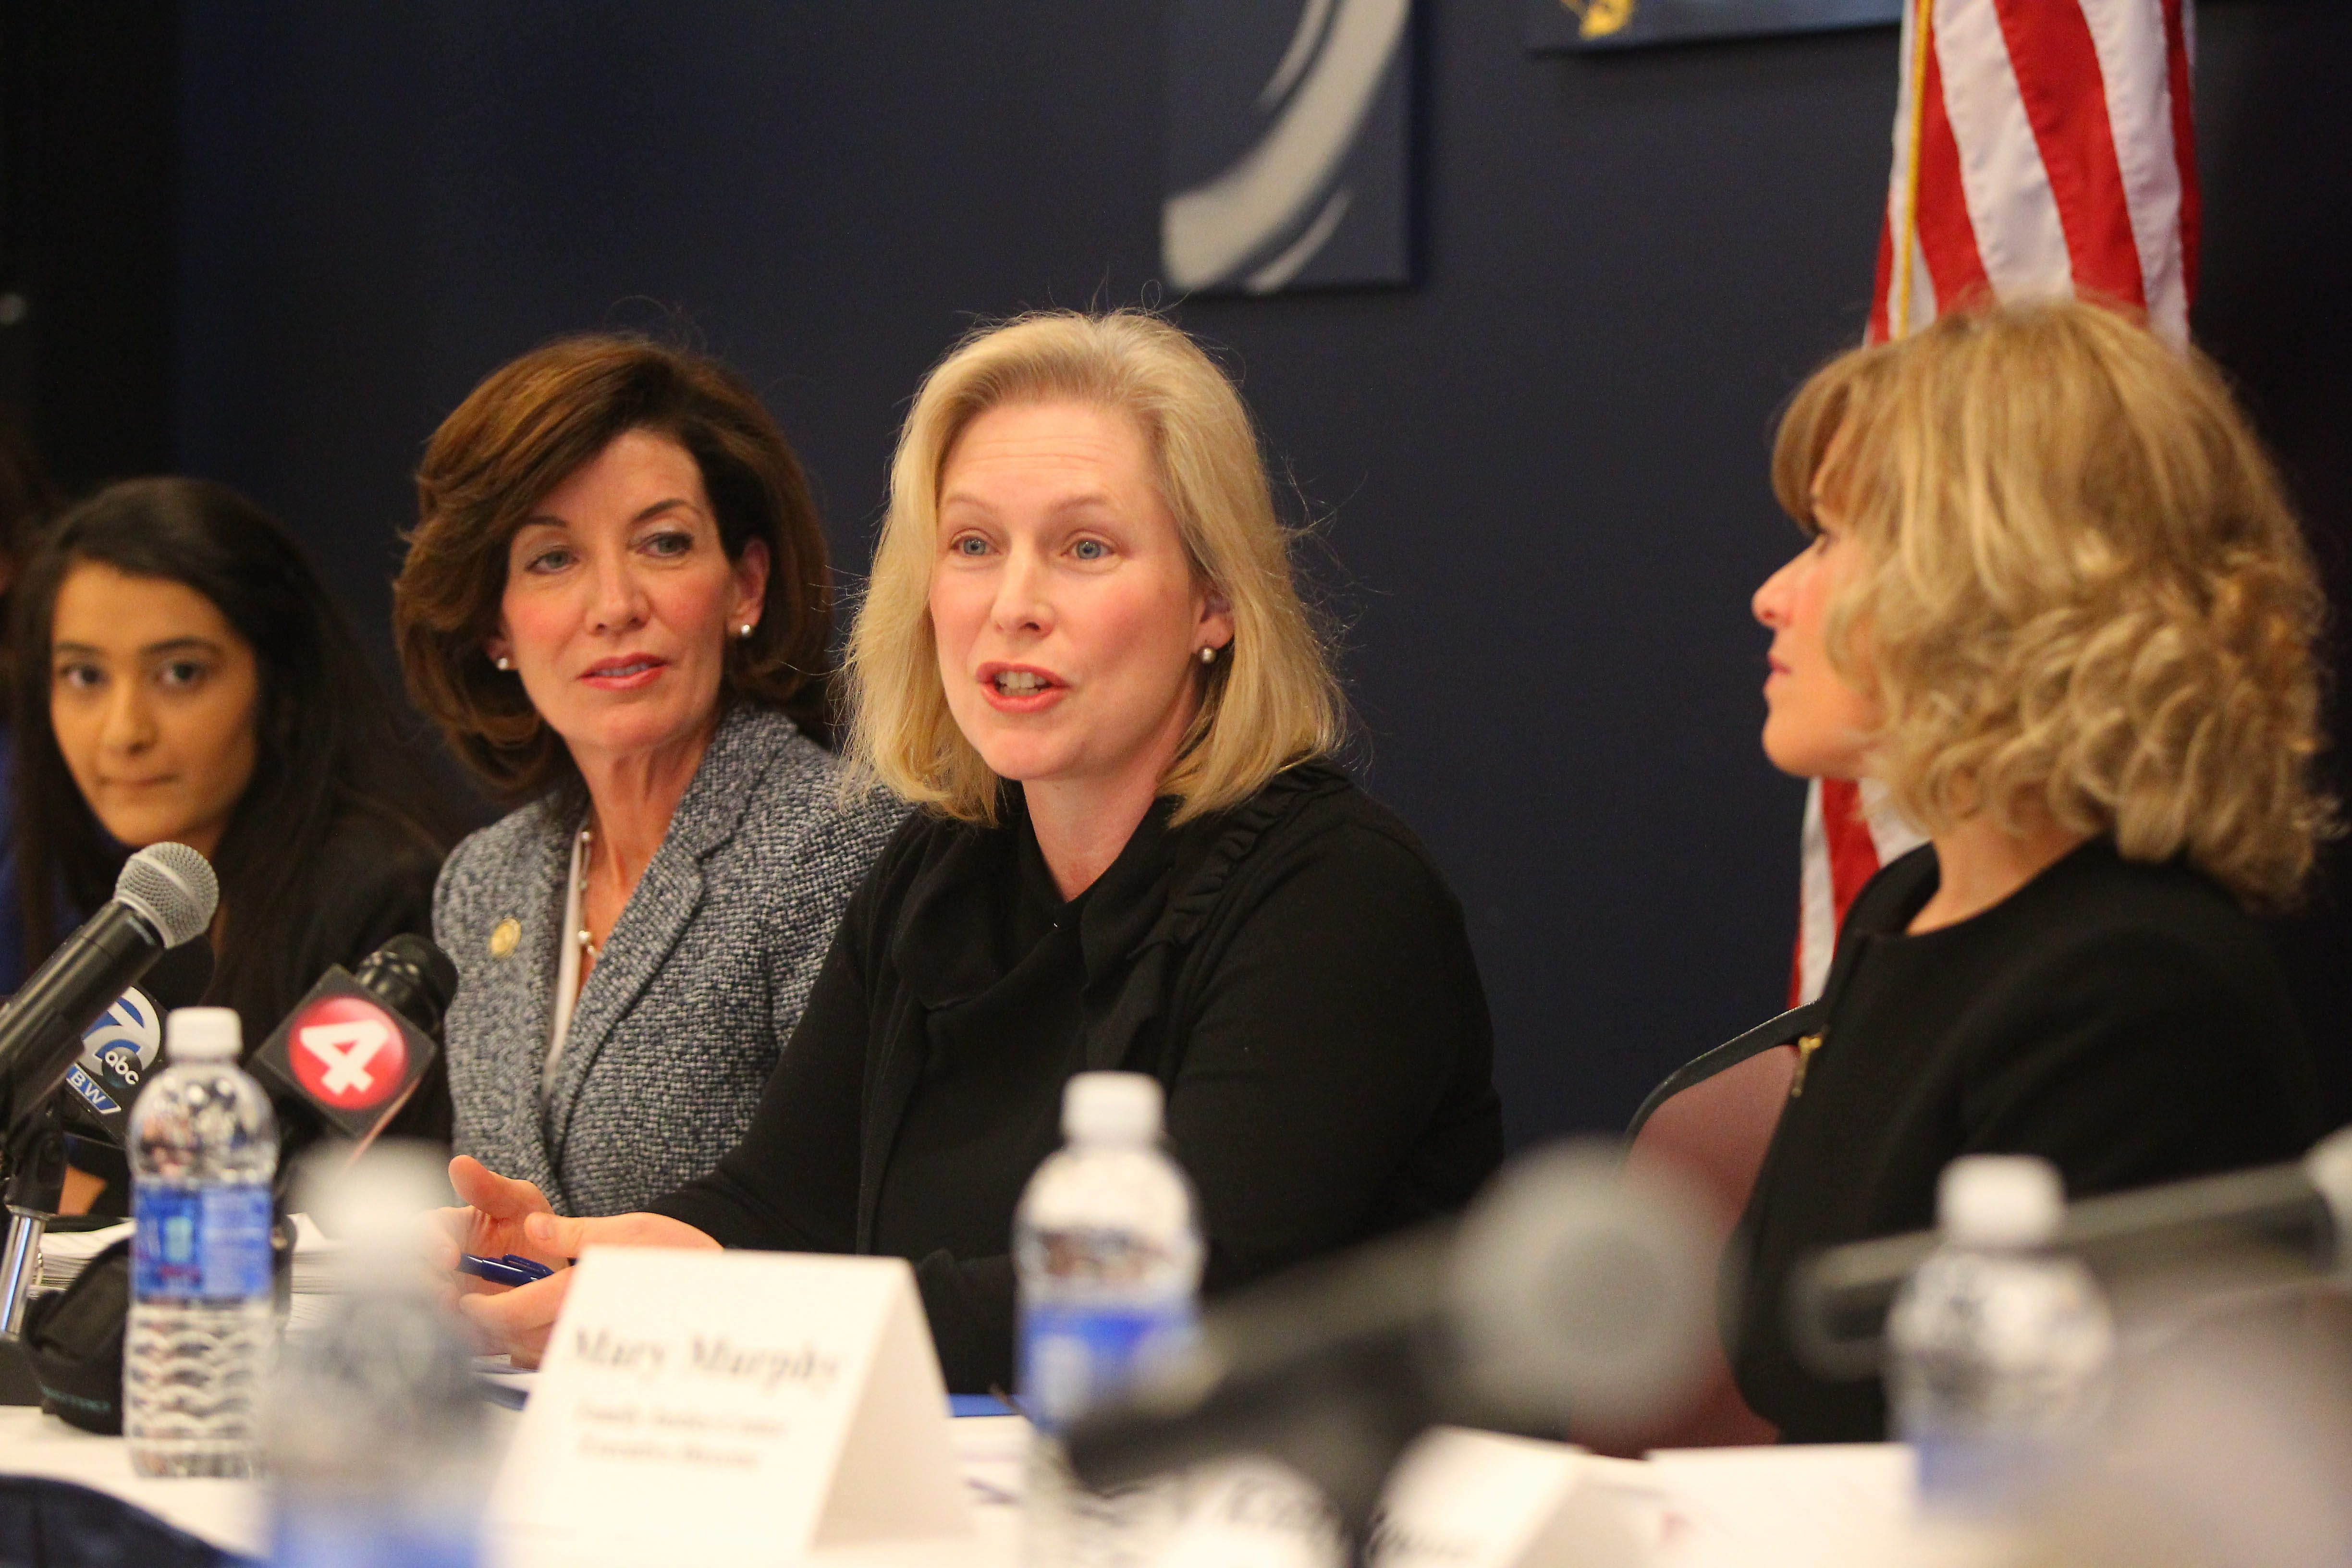 Sen. Kirsten Gillibrand,speaking, and Lt. Gov. Kathy Hochul, to her right, led a conference at UB this week on combating sexual violence on college campuses. (Mark Mulville/Buffalo News)